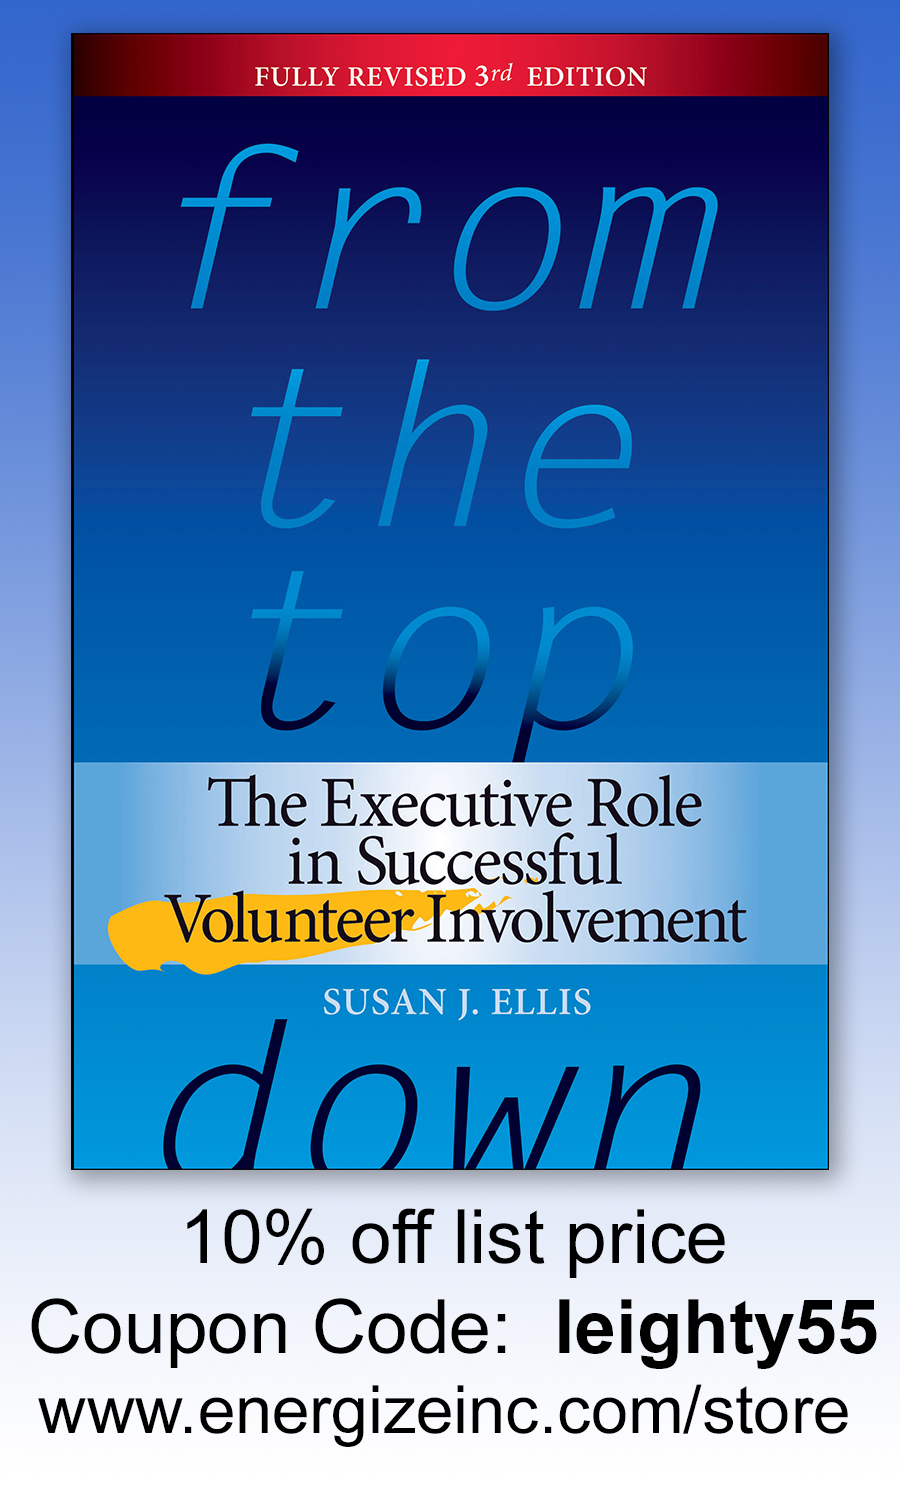 The Executive Role in Successful Volunteer Involvement, 3rd Edition